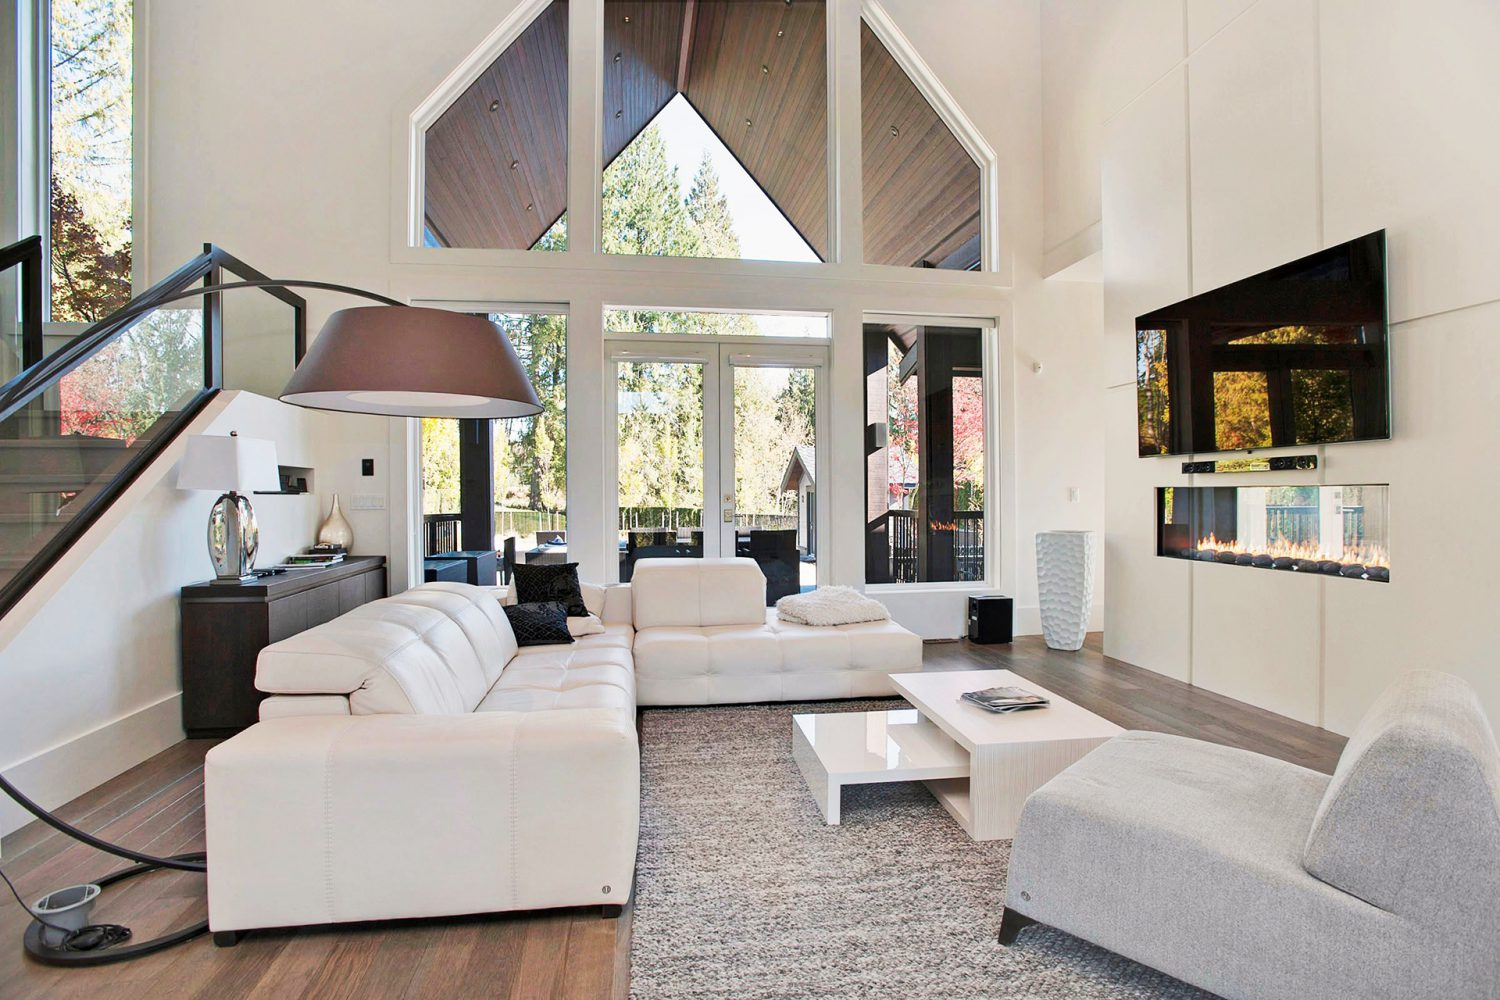 Forest interior designed grand living area with vaulted ceilings designed by Midland Premium Properties in Vancouver, BC